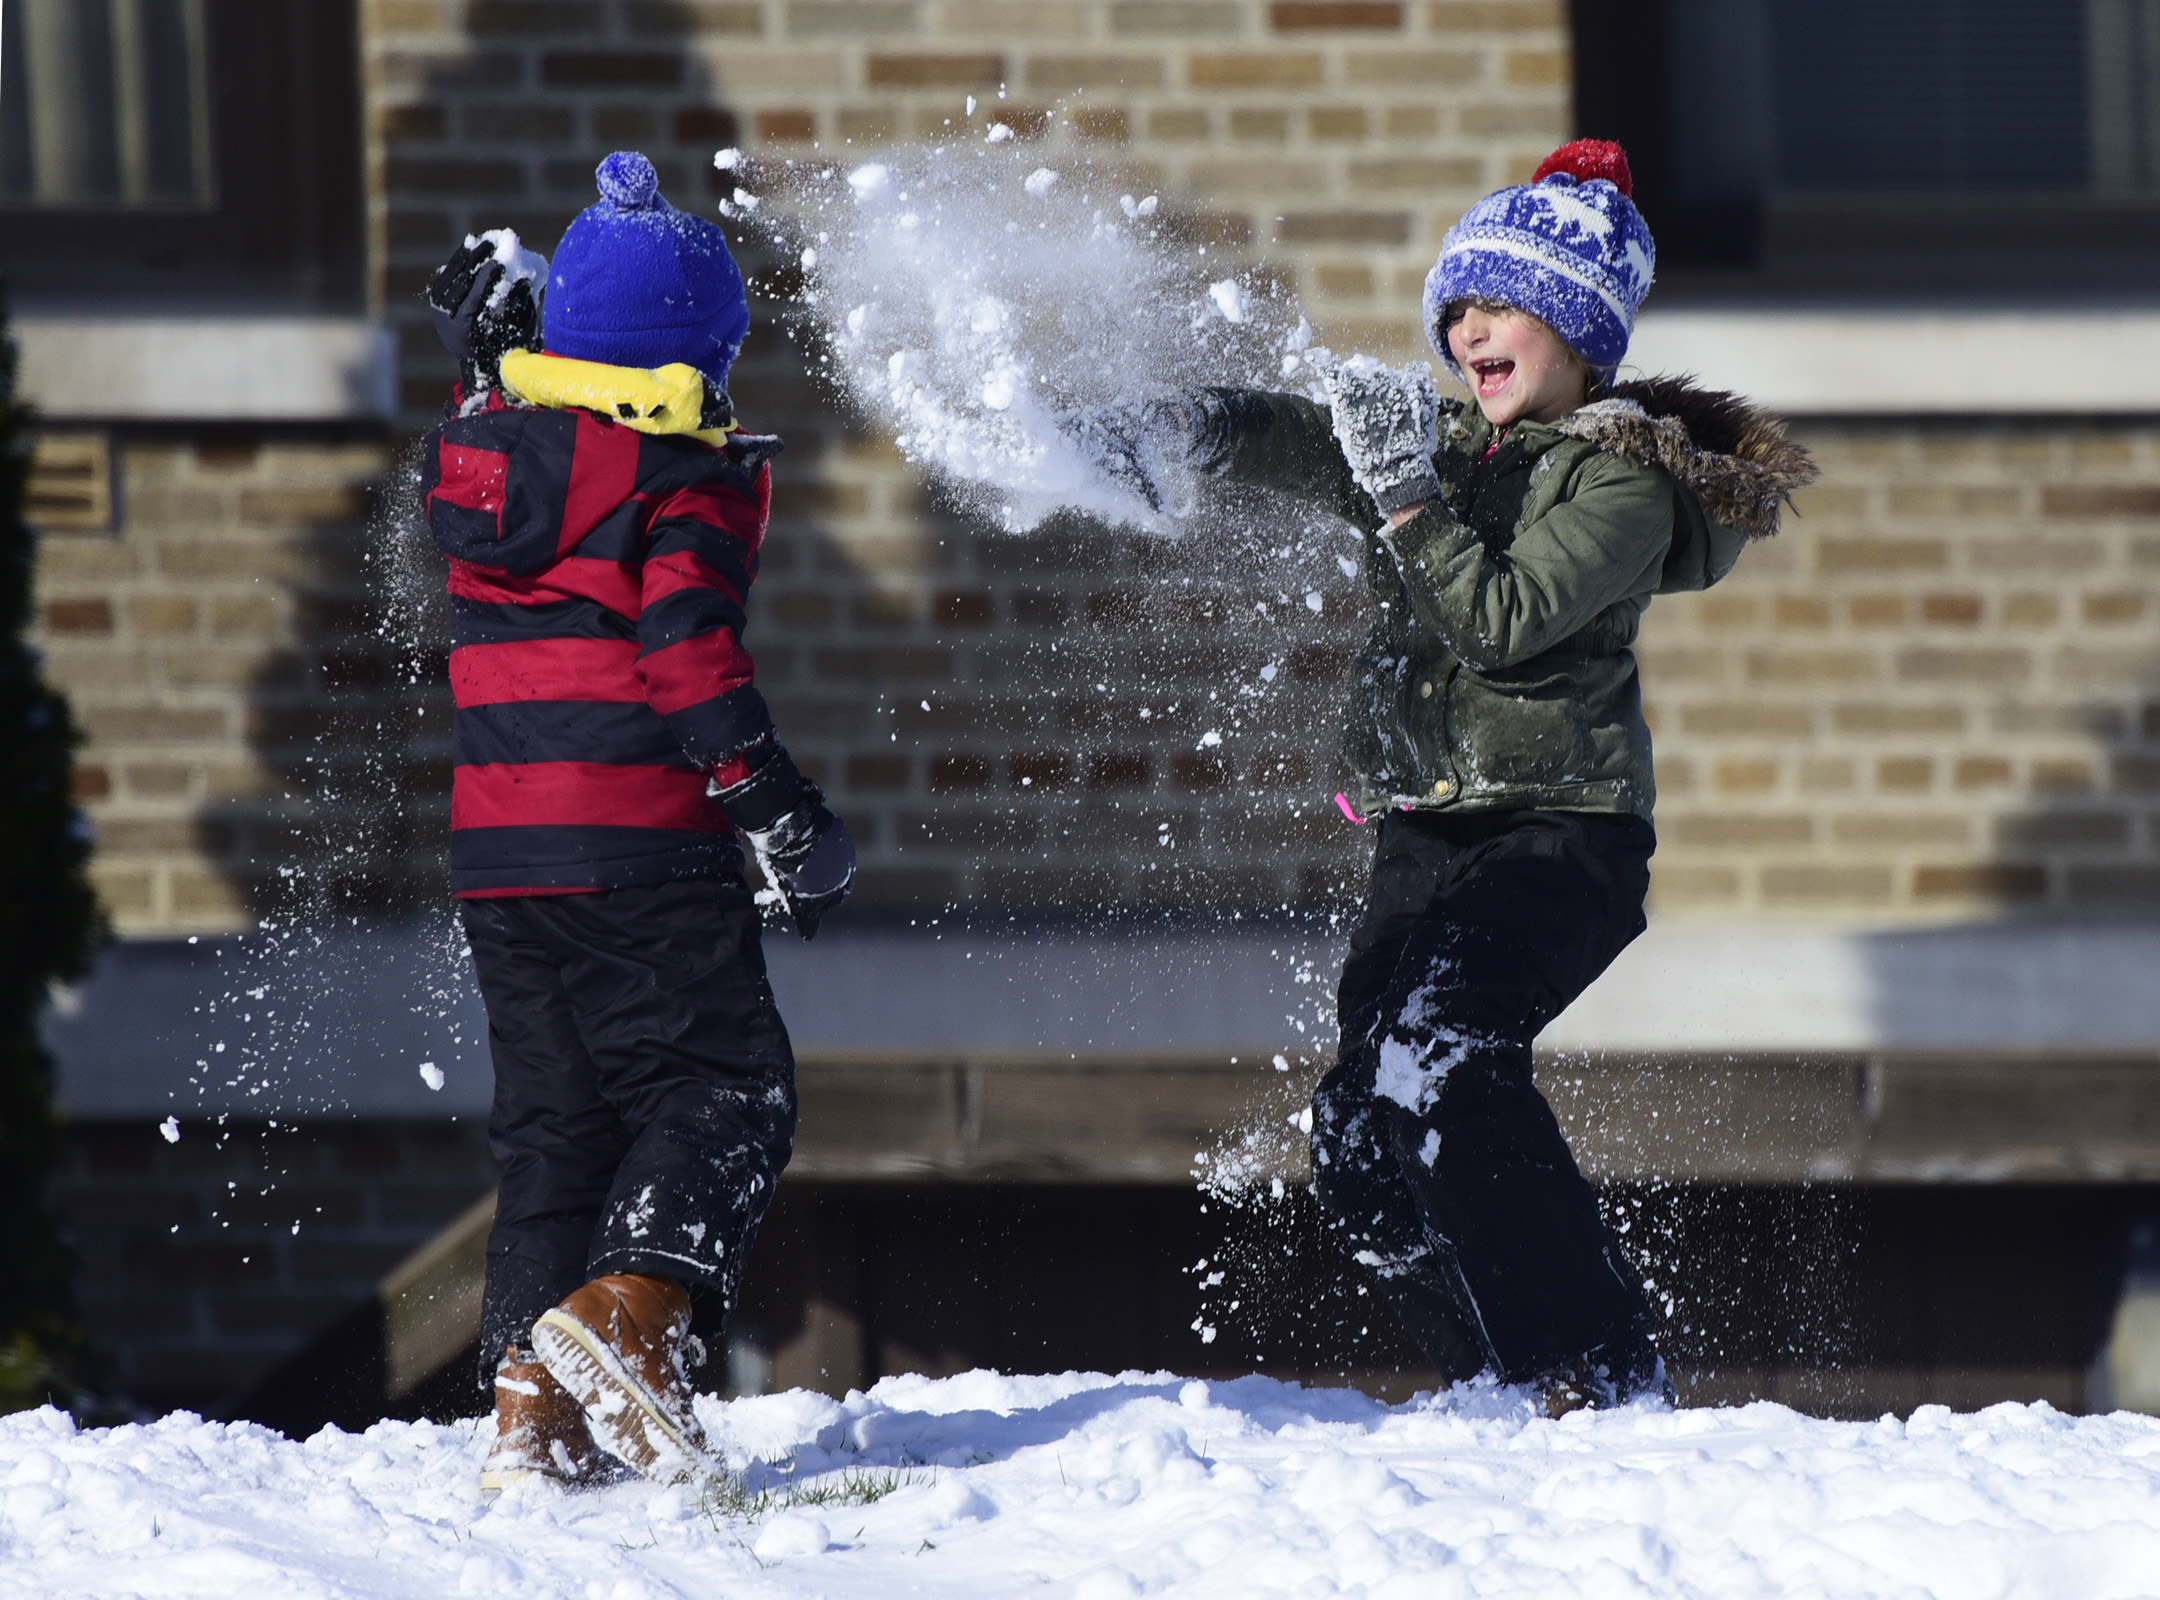 Mia Conrad, 7, of Gibsonburg, right, throws a snow ball at her brother, Zander, 5.